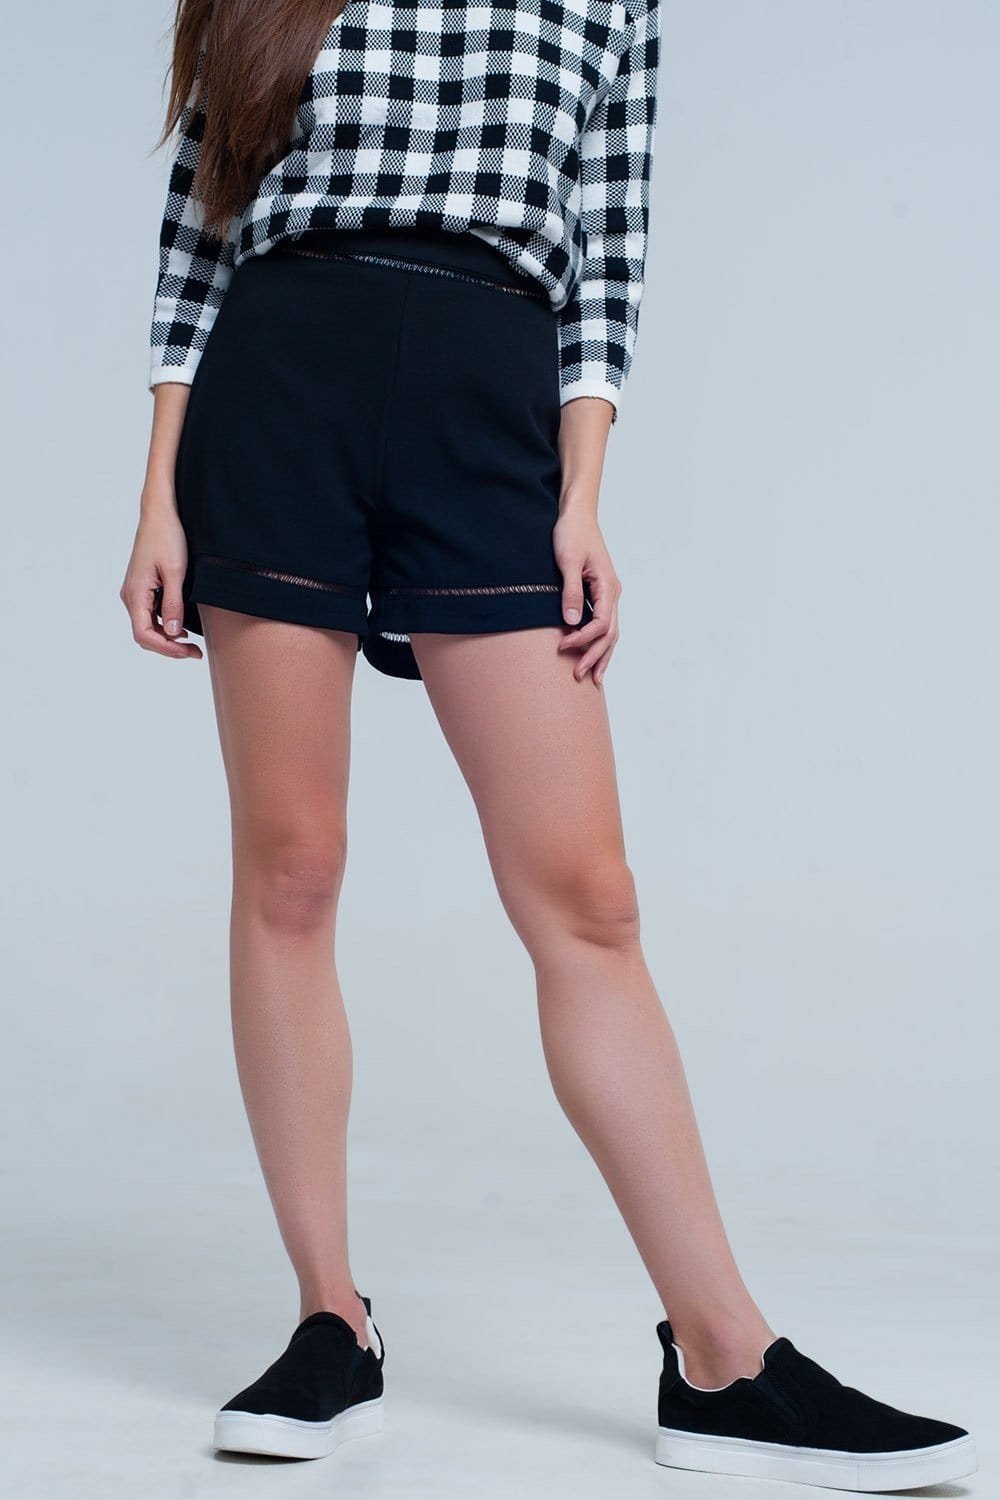 High waist black short with lace detail - Himelhoch's